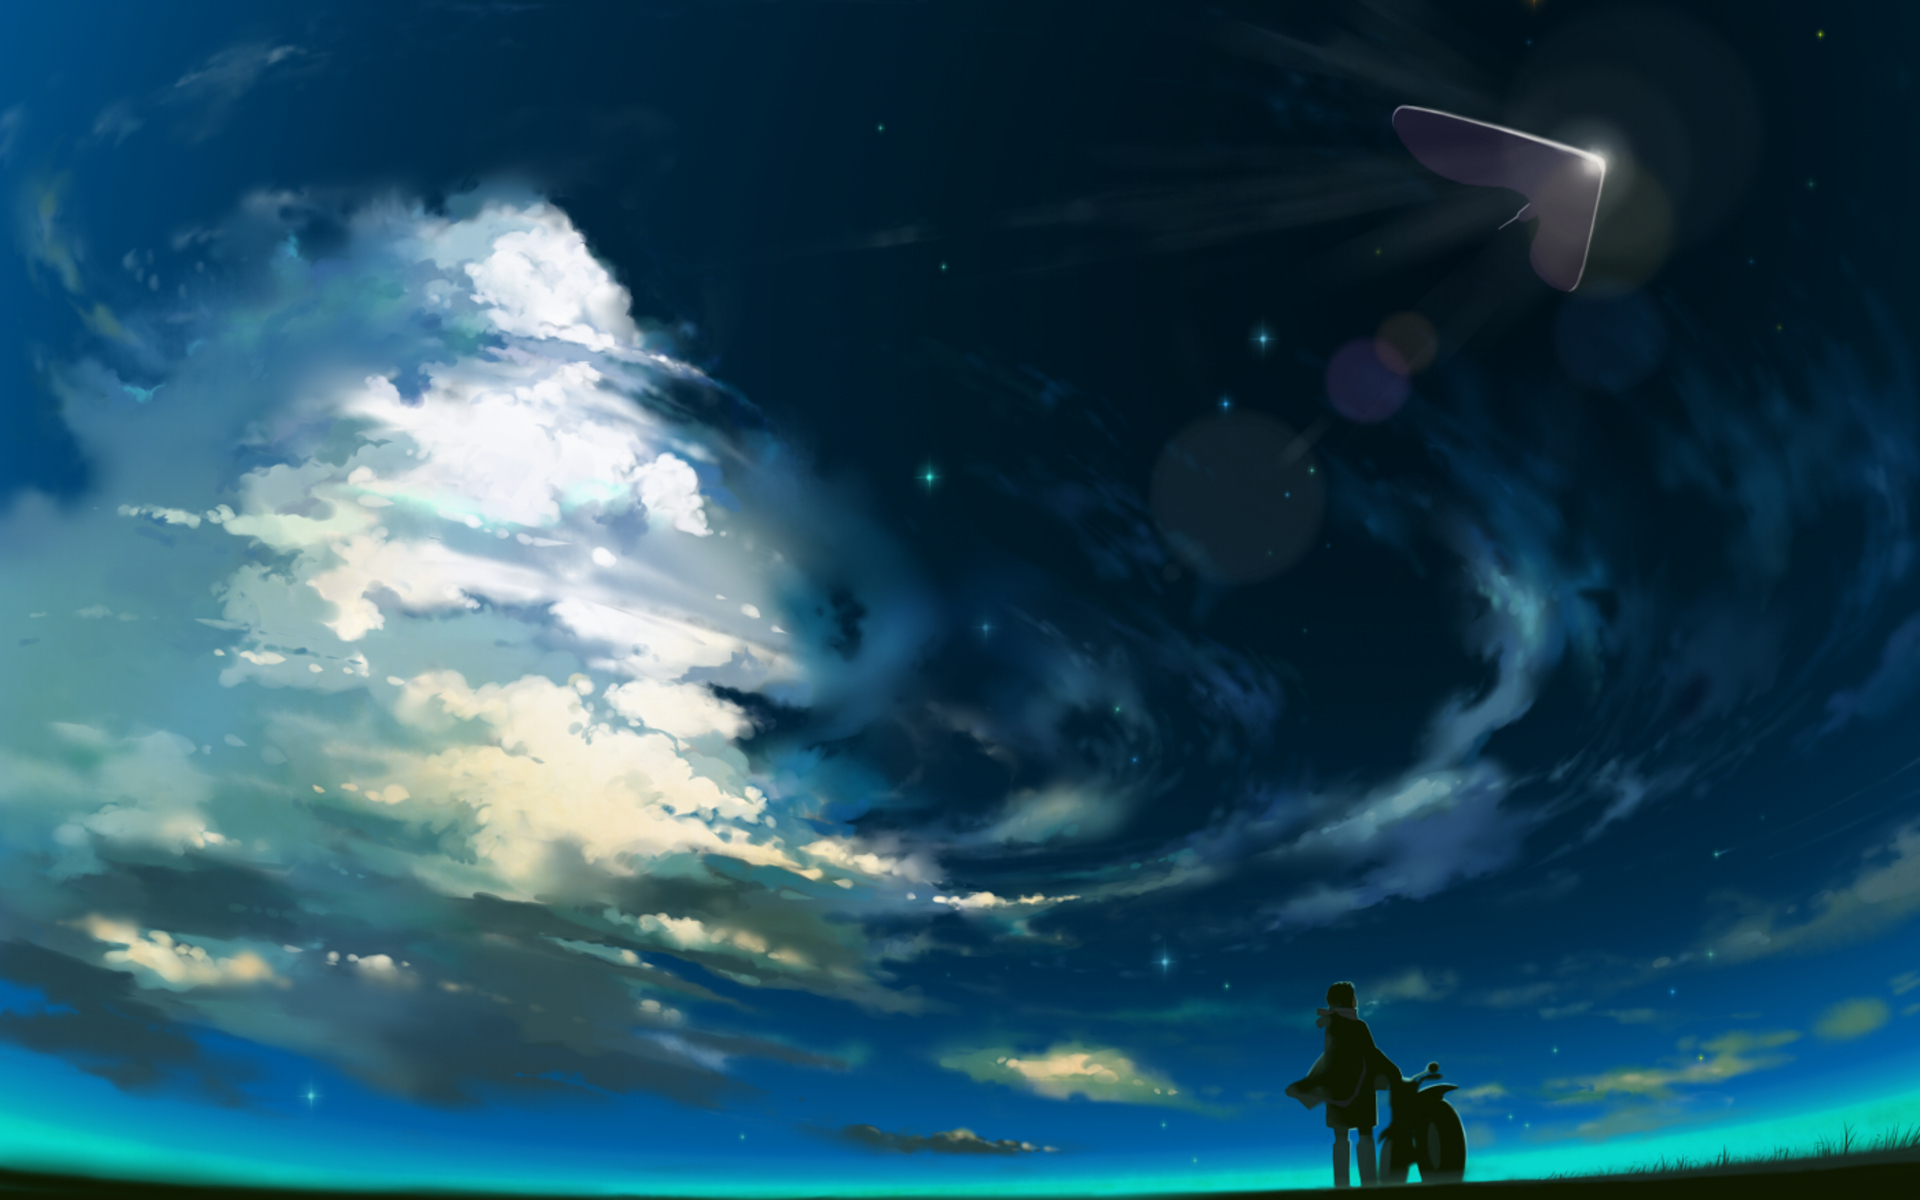 Beautiful Anime Scenery Wallpaper